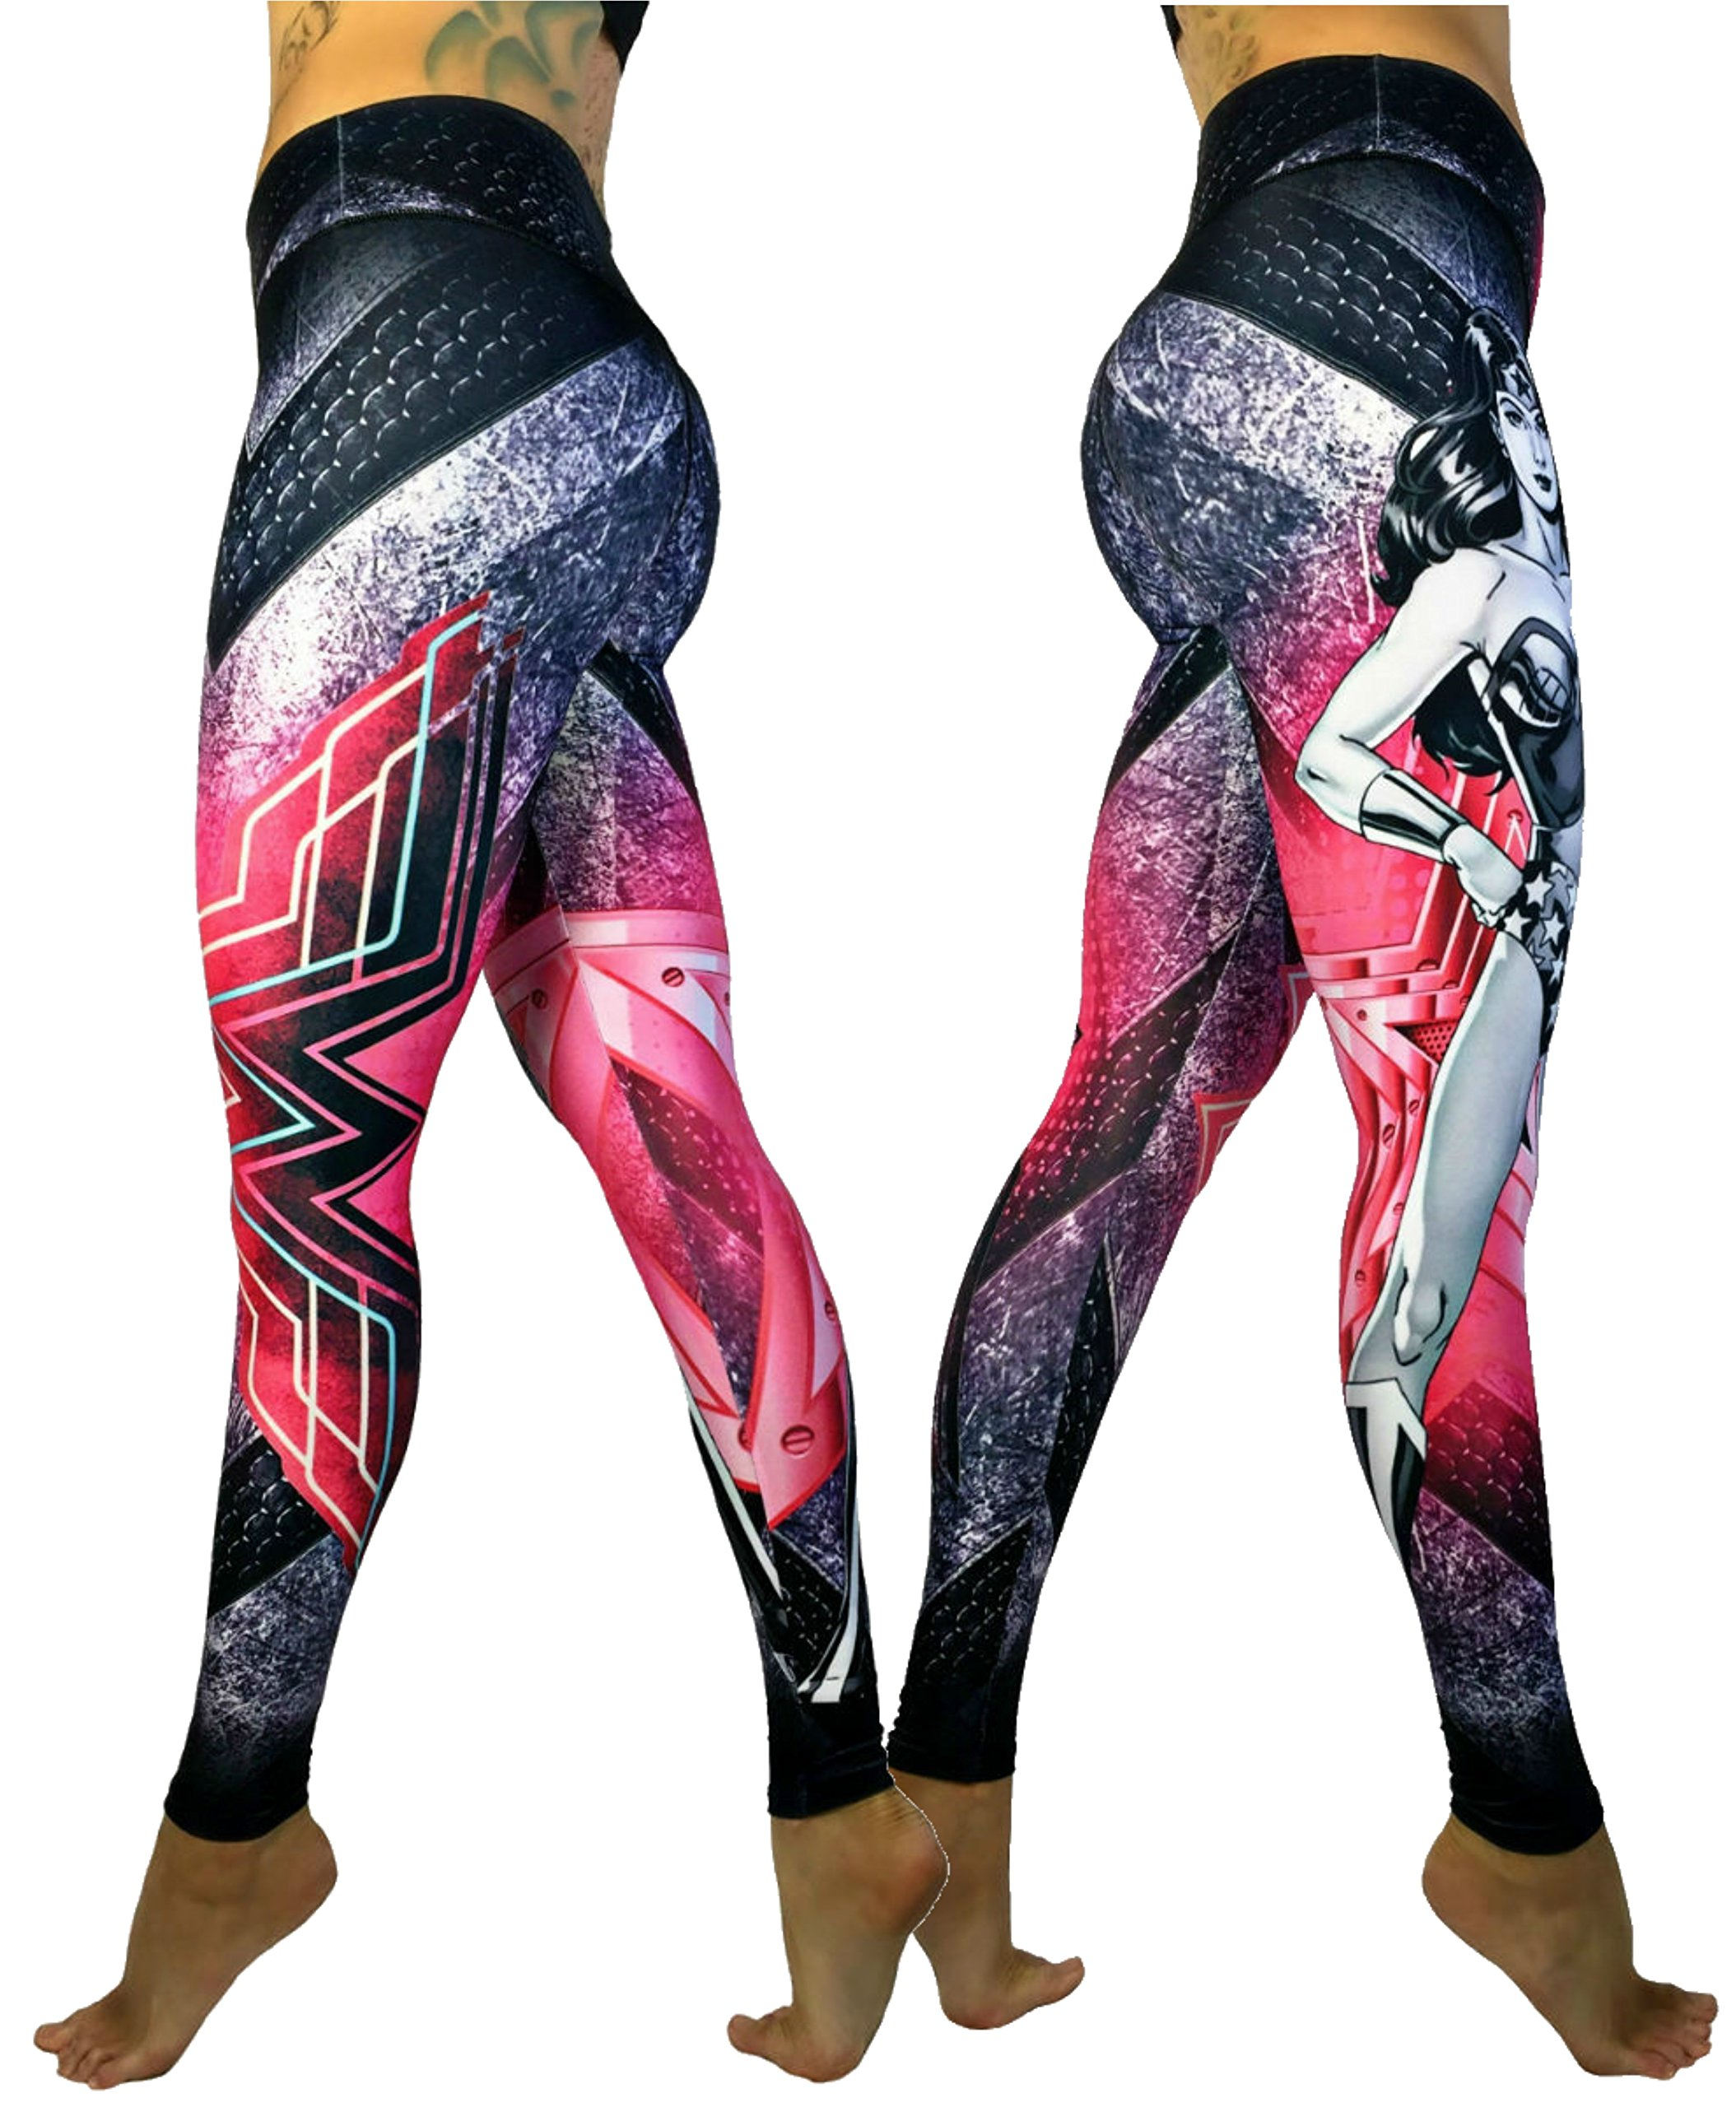 Exit 75 Superhero Many Styles Leggings Yoga Pants Compression Tights (Wonder Woman Pink Sm/Med)